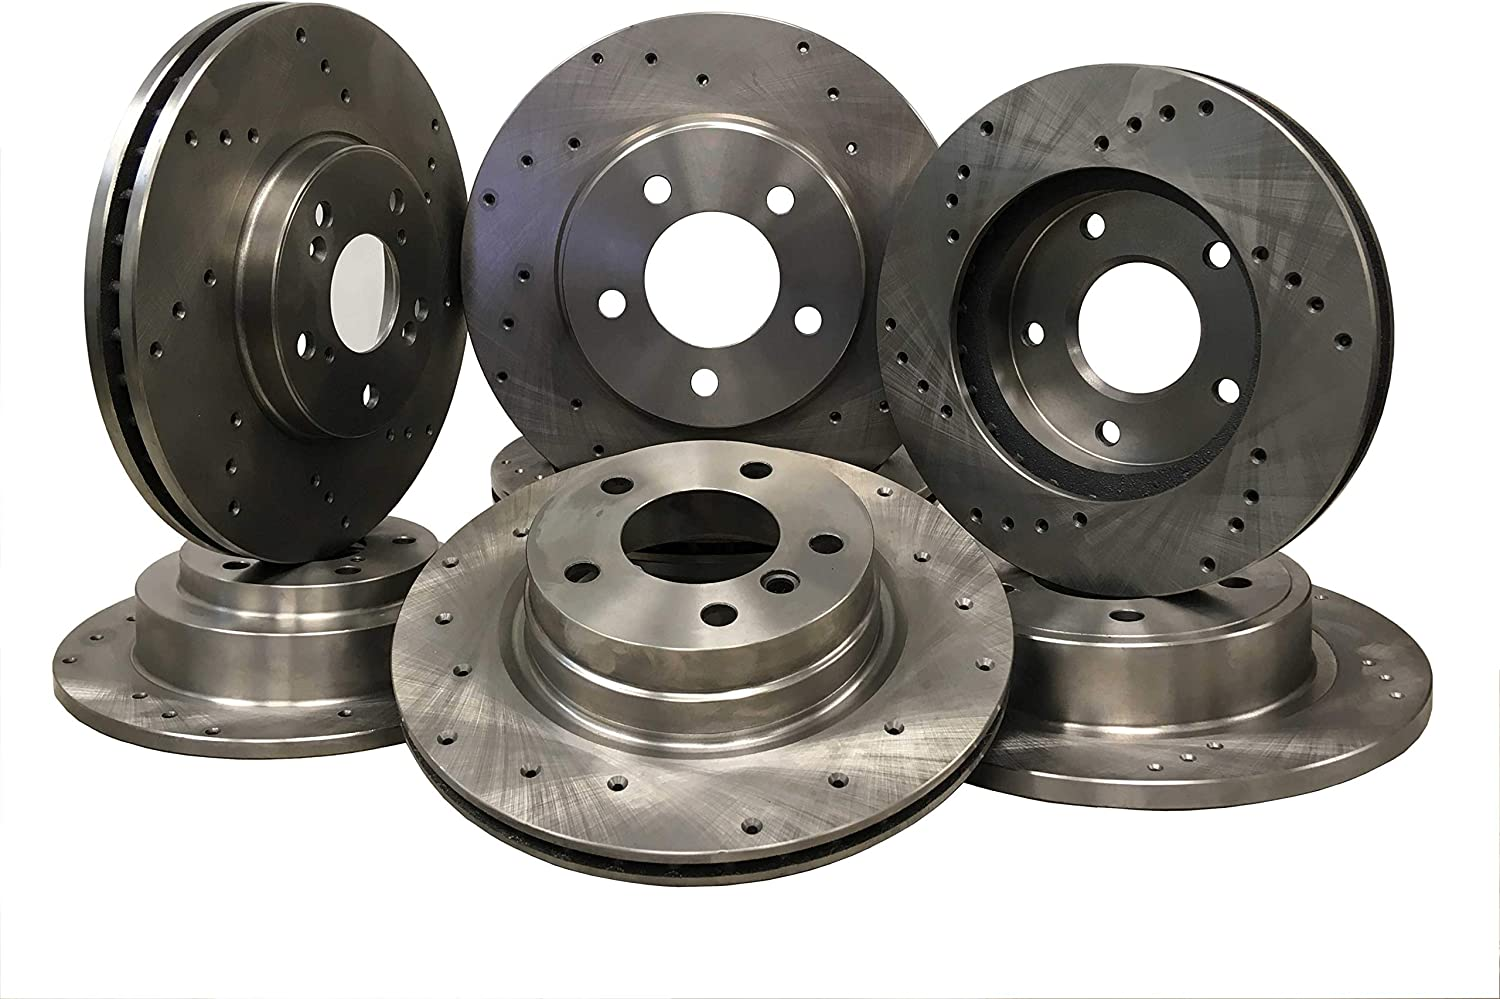 5447D Front Drilled Brake pair Rotor 超激安 of 2 爆買い送料無料